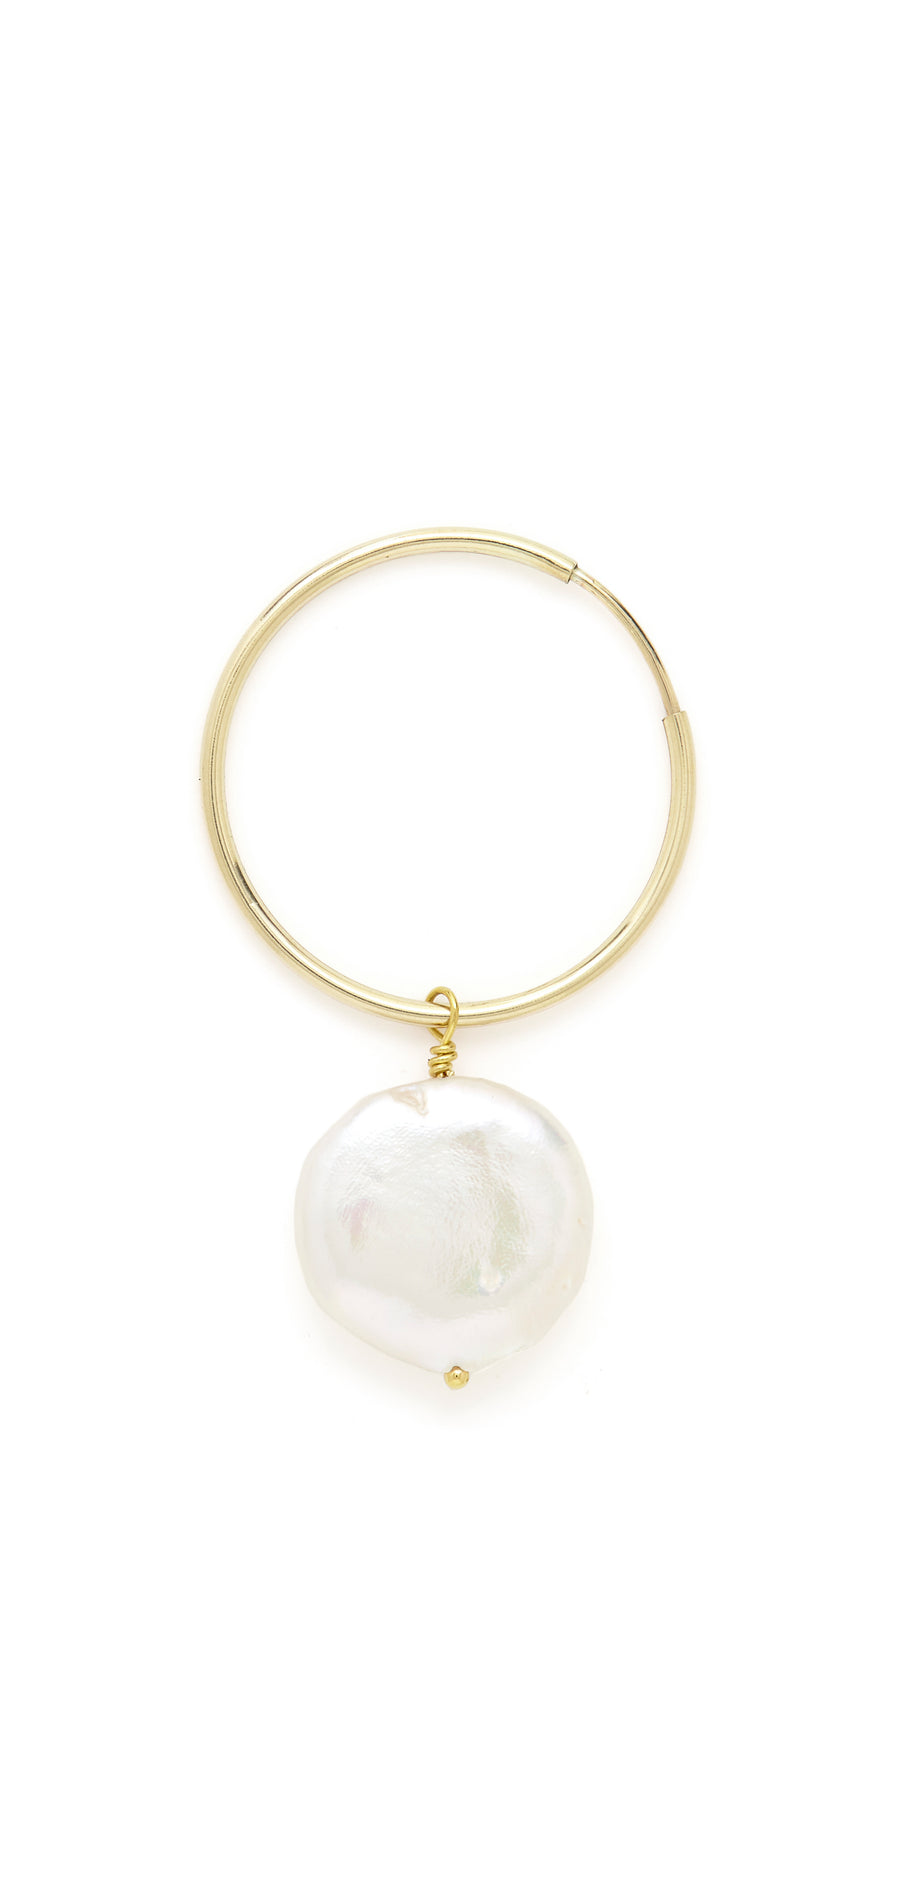 Coco freshwater pearl hoops